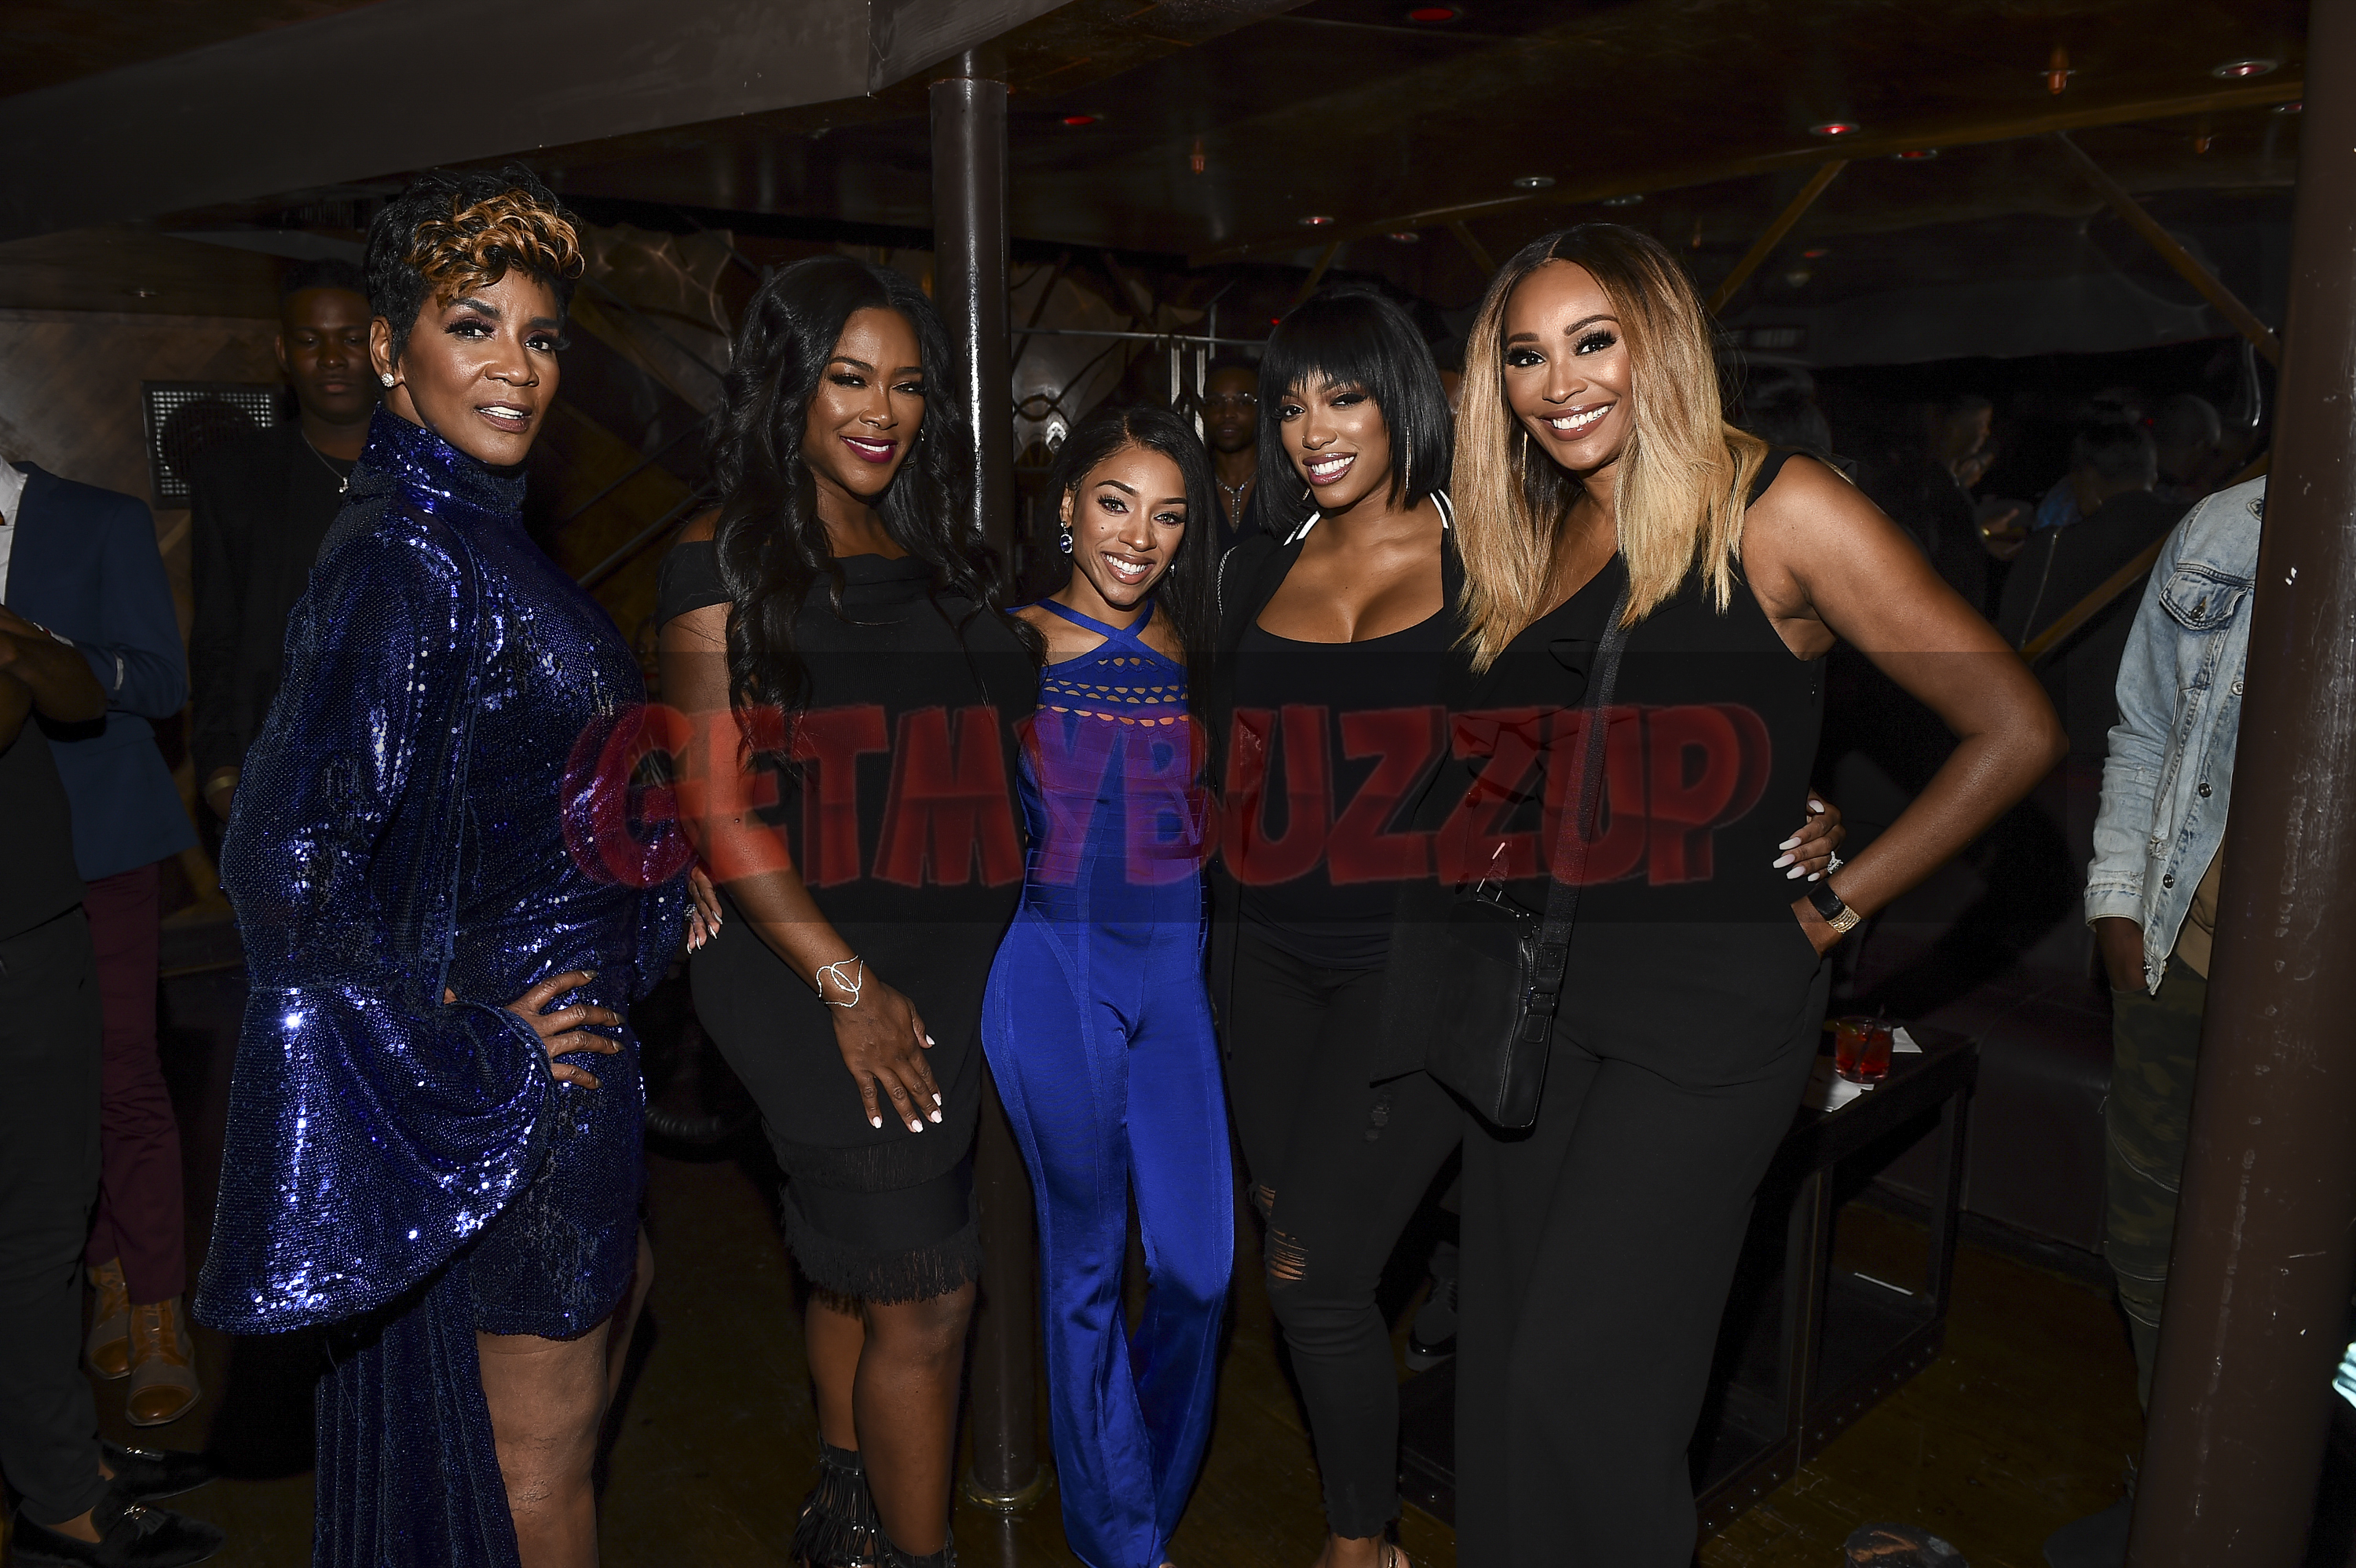 WEtv Hosts Party for return of Growing Up Hip Hop ATL #guhhatl [Photos]